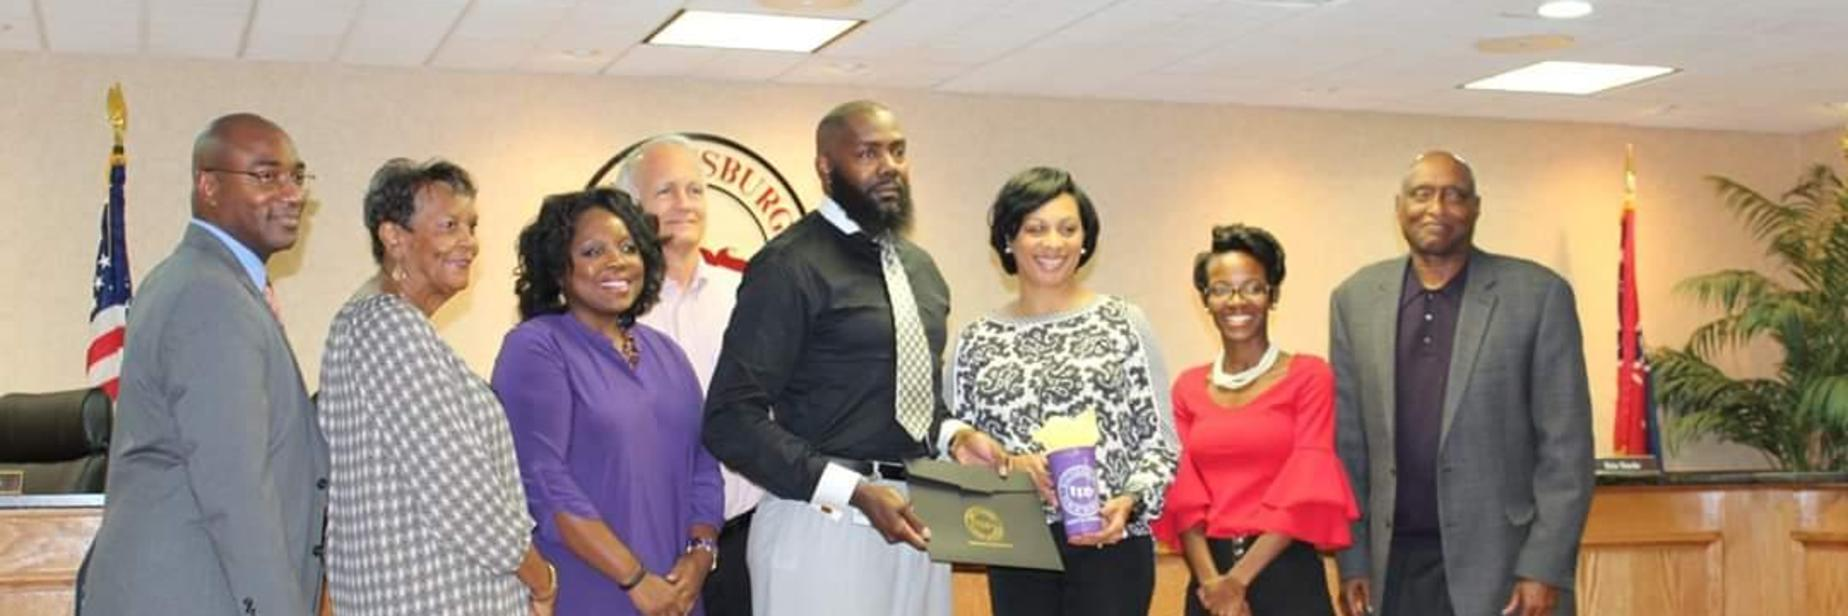 School Board Recognizes Elisha Barnes-Booth